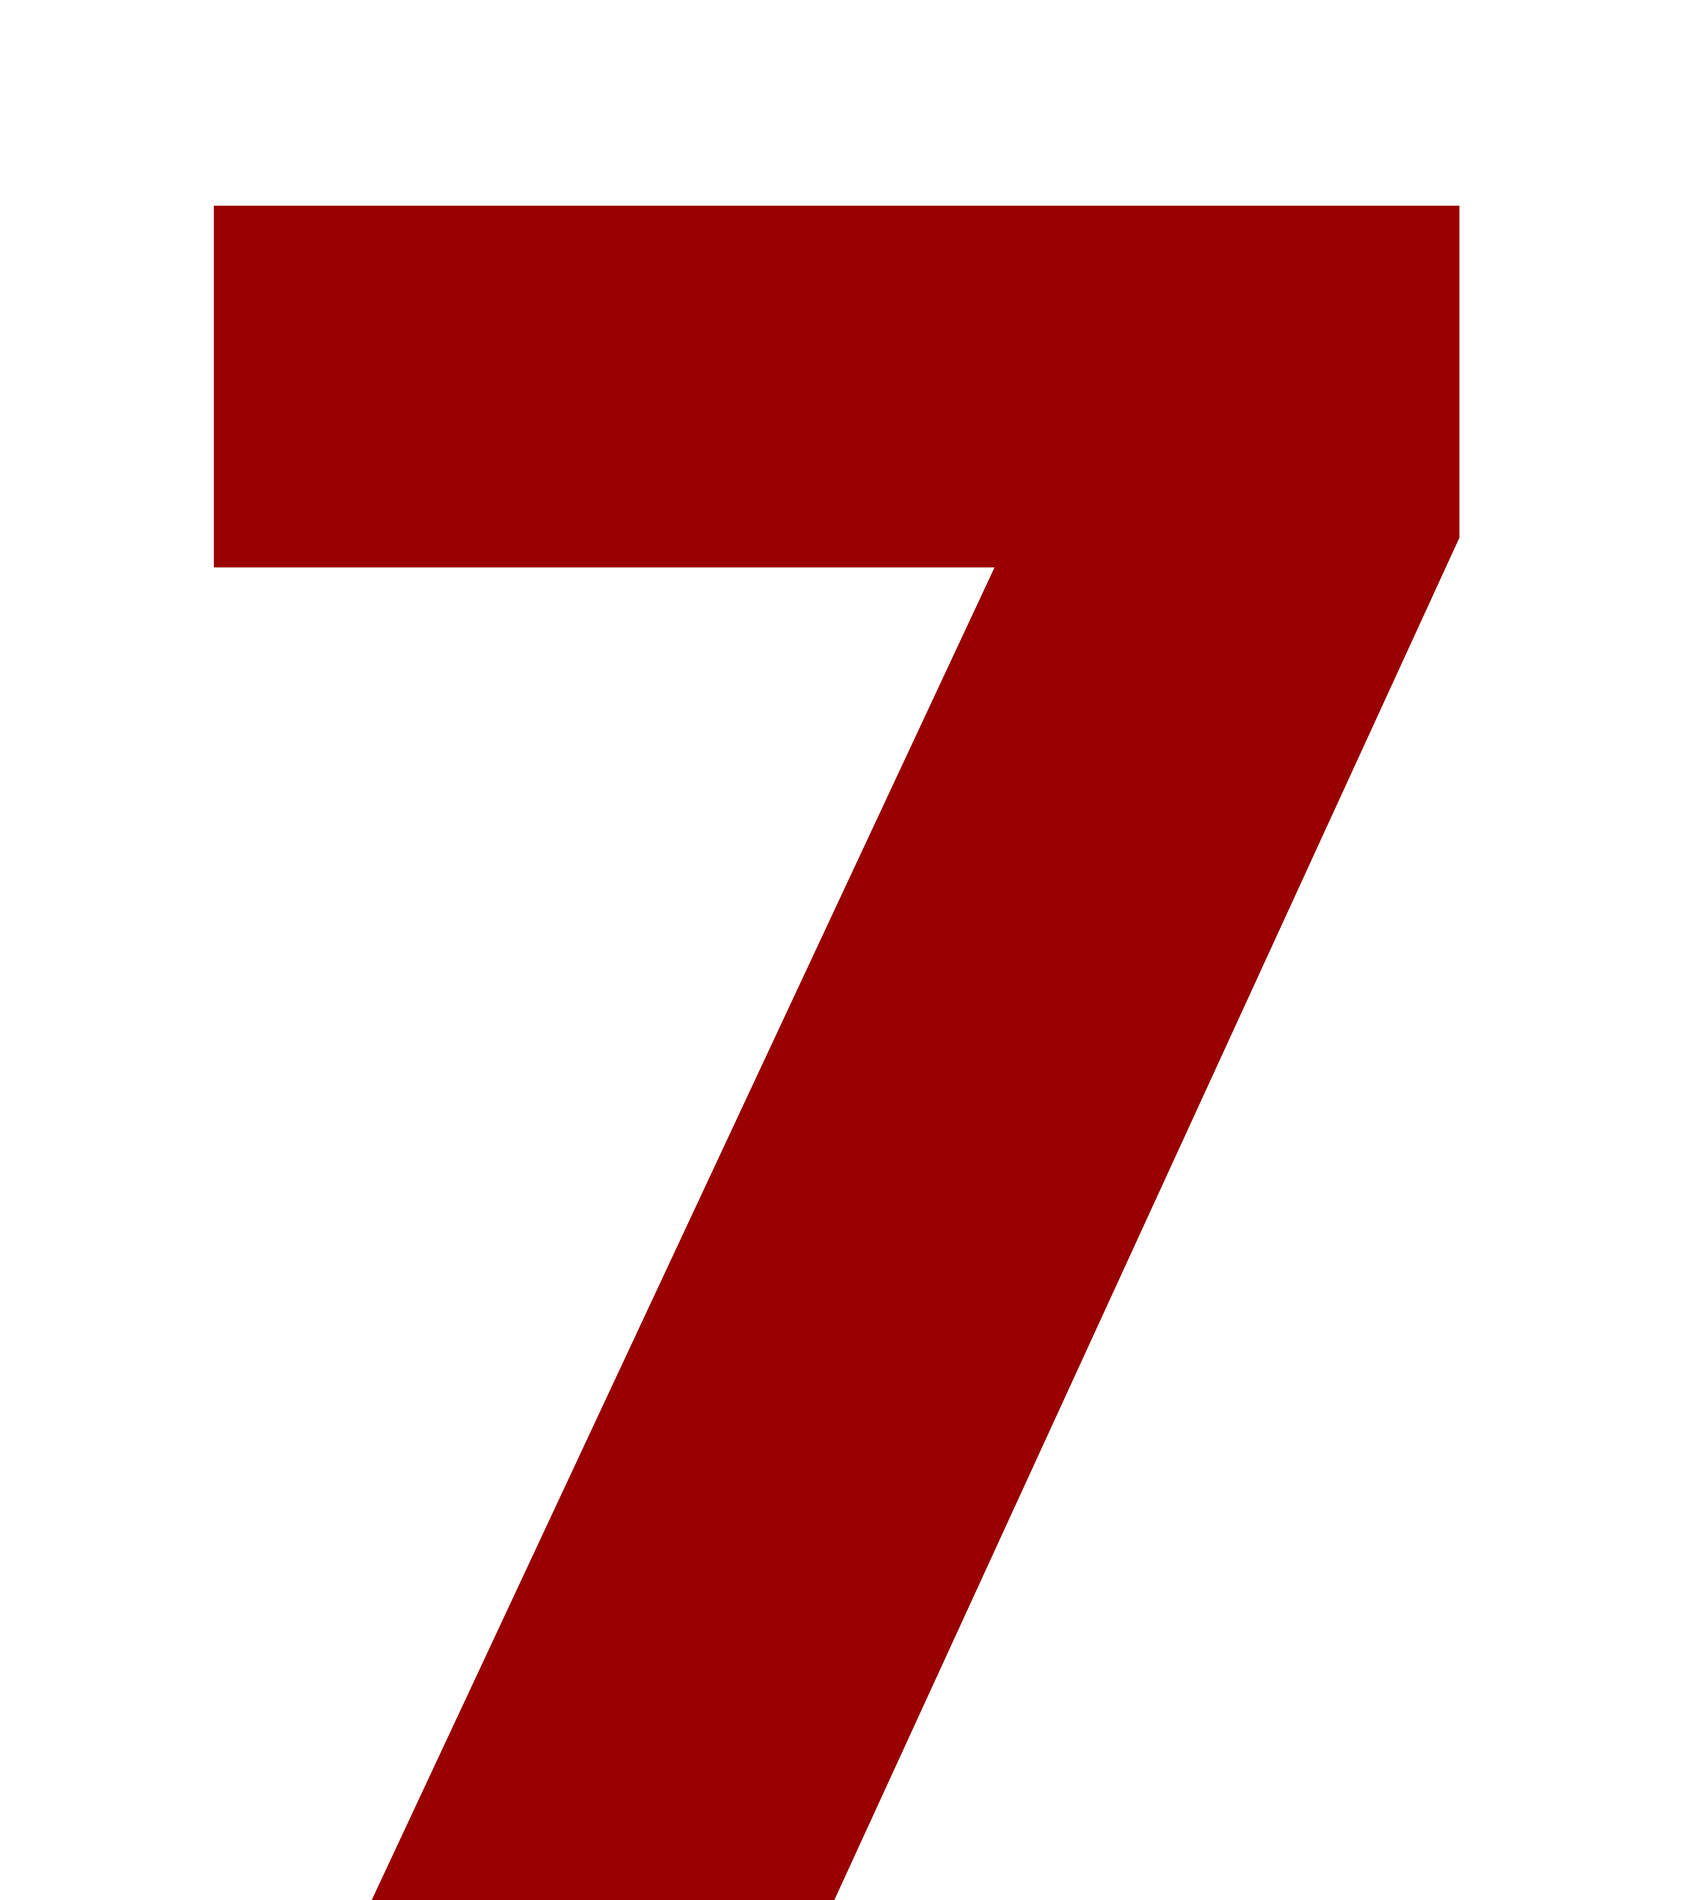 A large number 7.